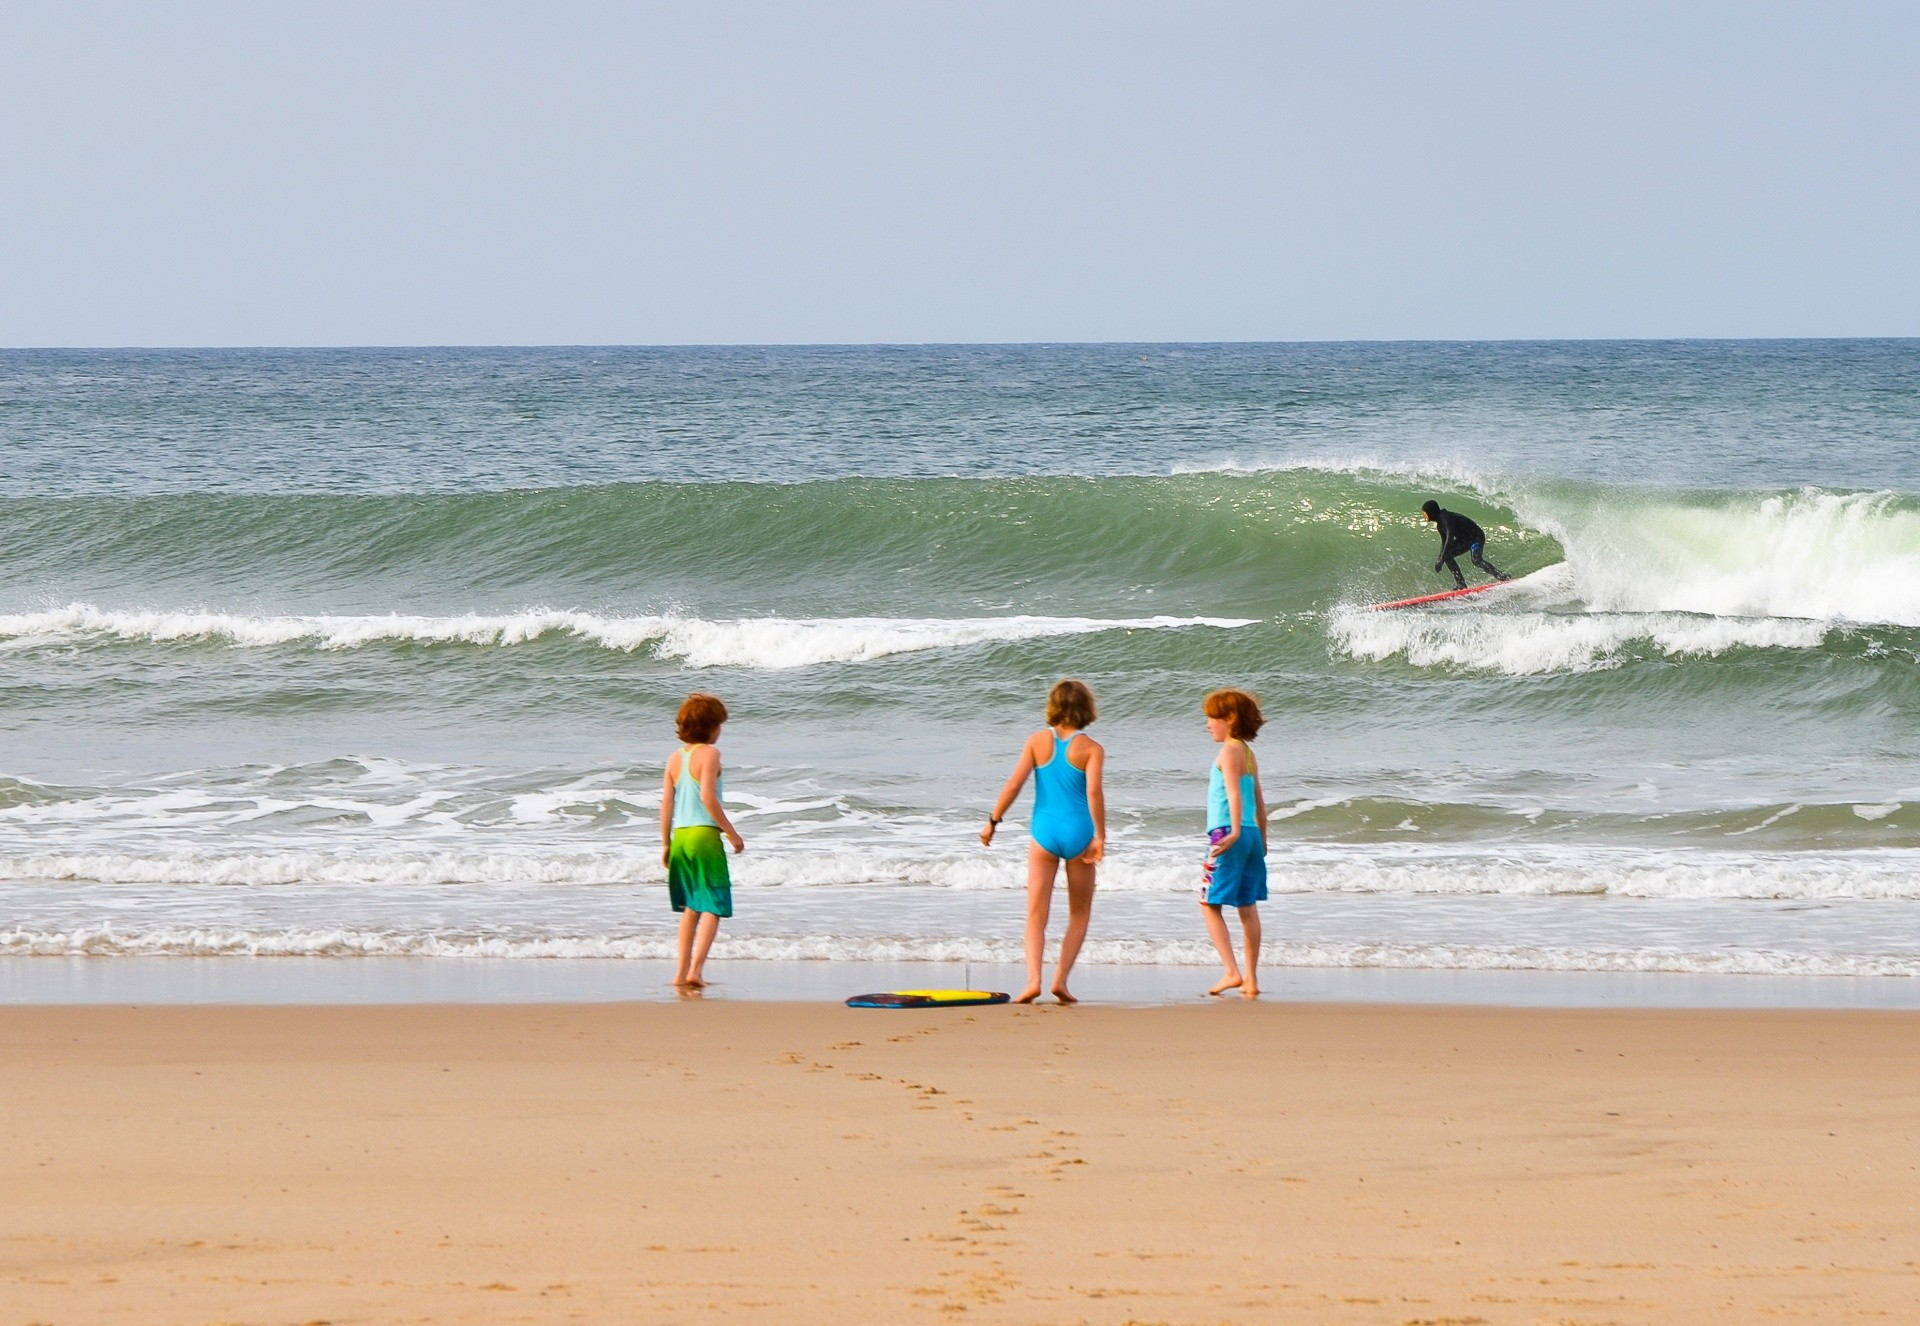 J.Clancy 's photo of Cape Cod